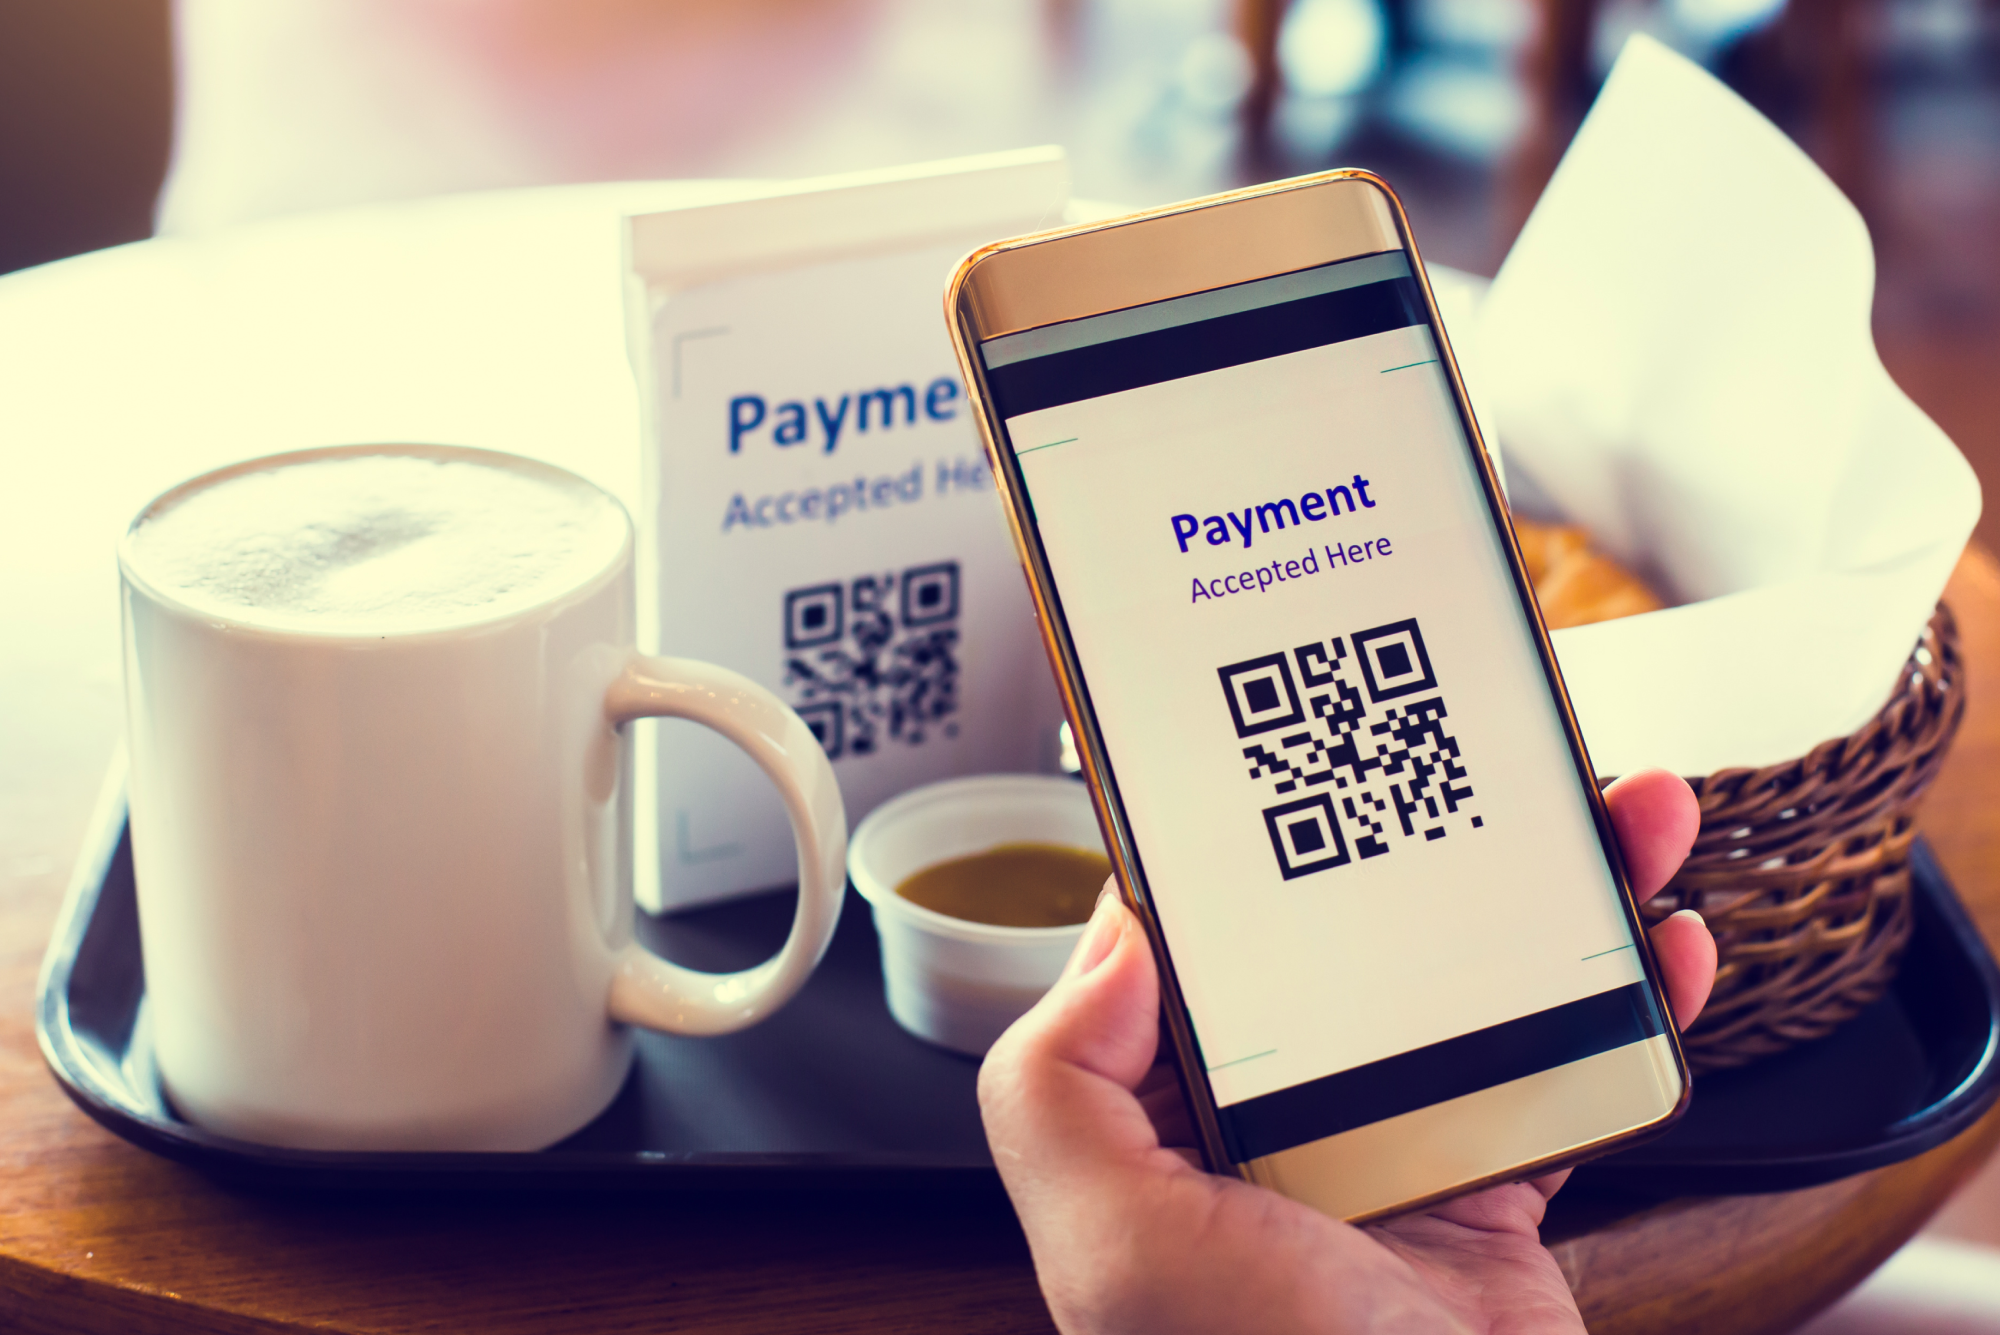 The Top 5 Alternative Payment Methods for 2021